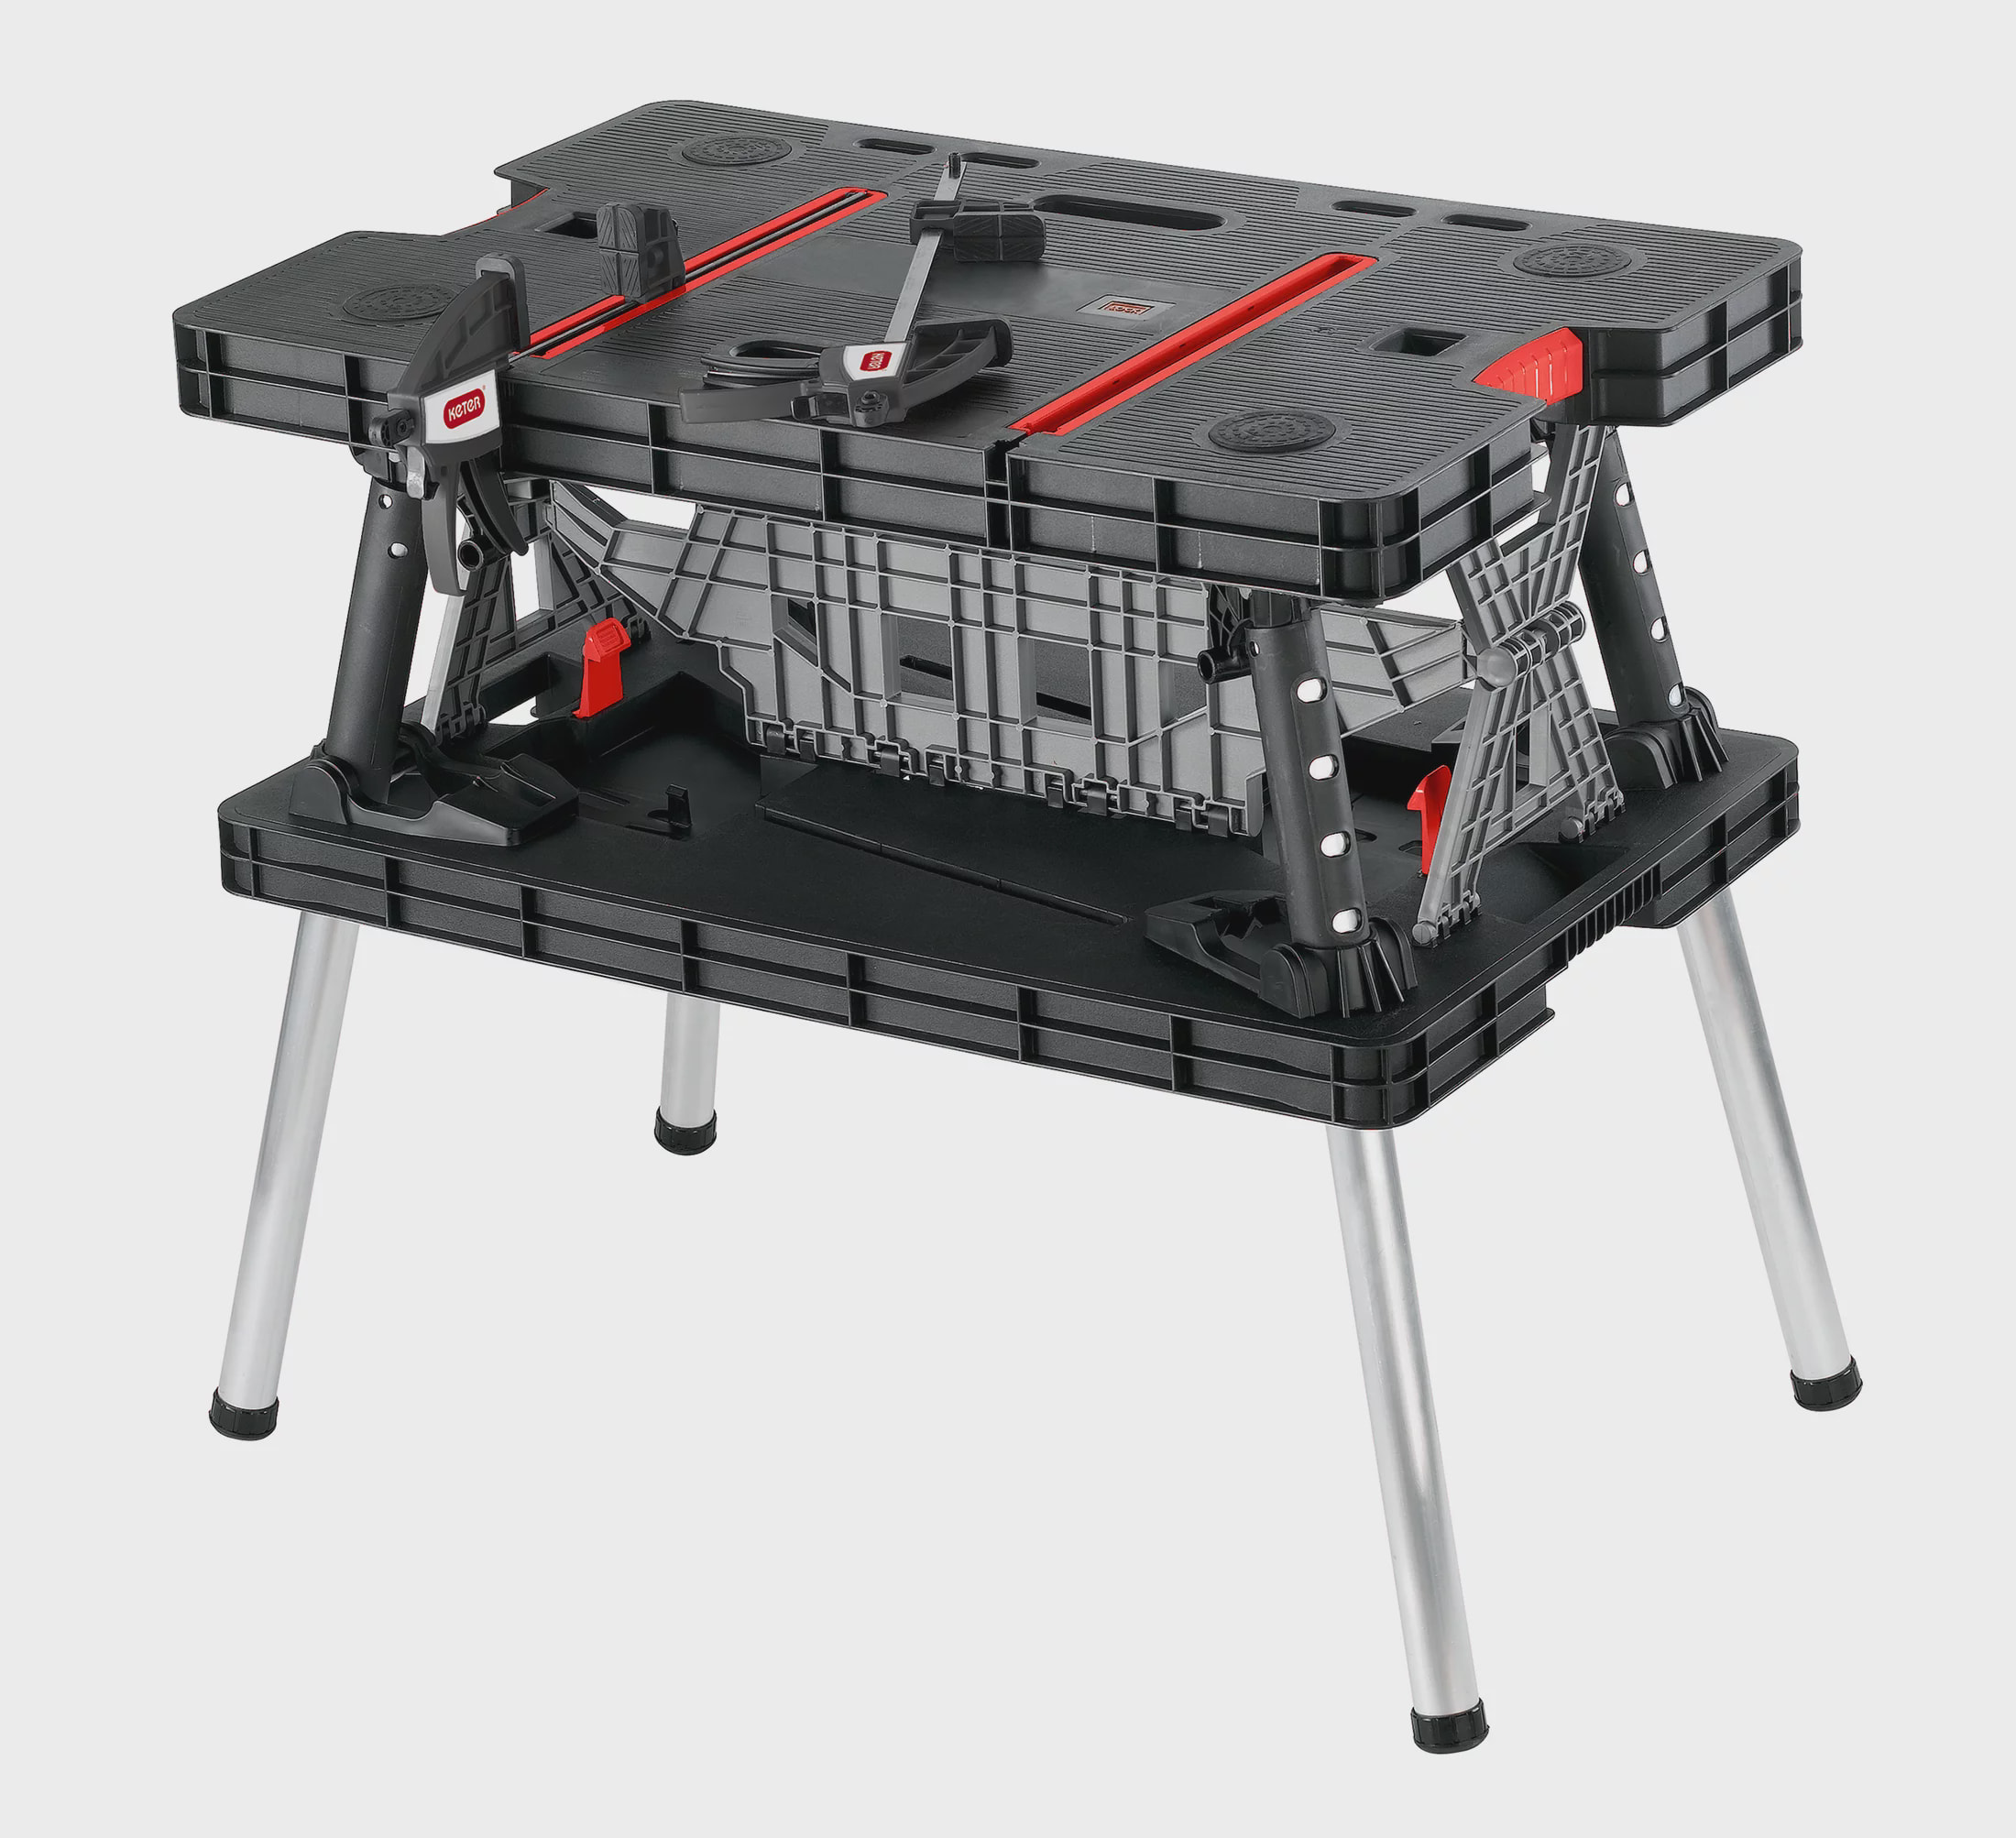 Keter Folding Worktable, Adjustable Resin Work Bench with Clamps, Black by Keter